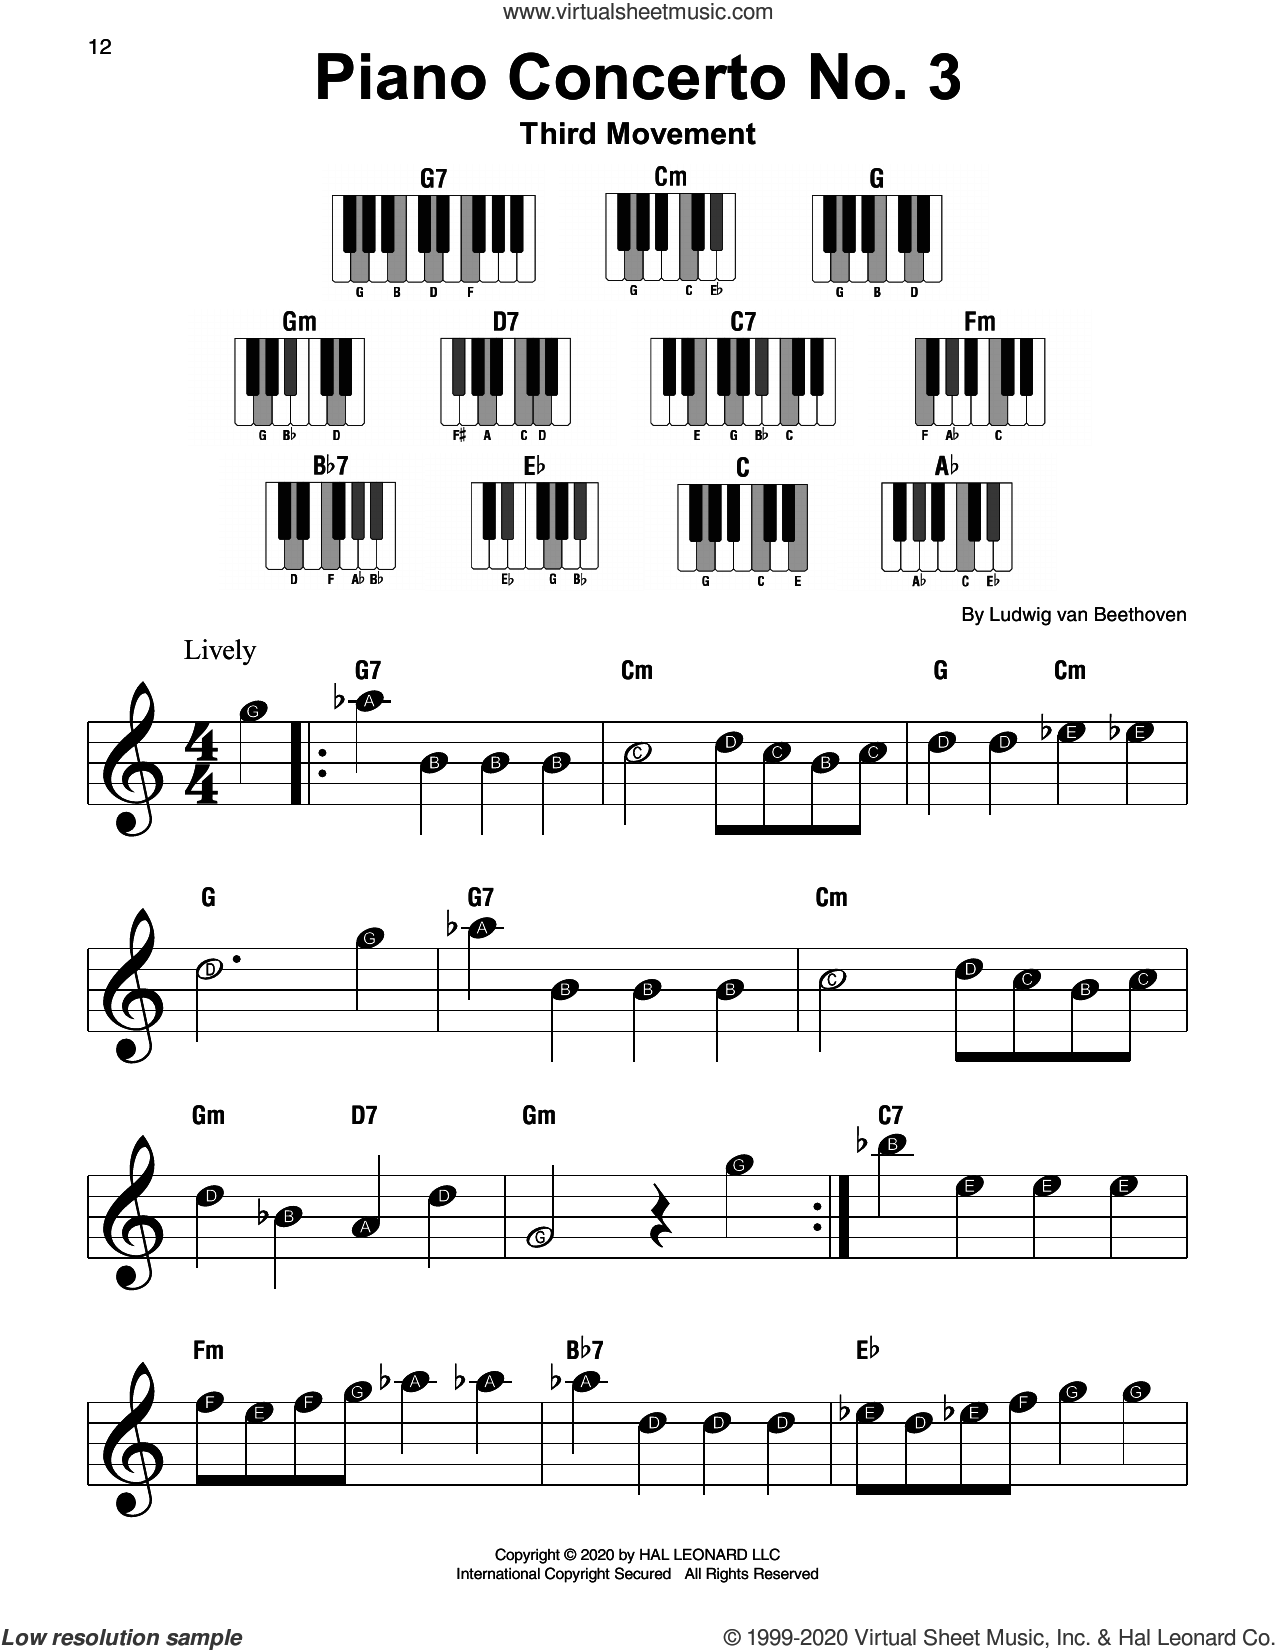 Piano Concerto No. 3, 3rd Movement sheet music for piano solo by Ludwig van Beethoven, classical score, beginner skill level